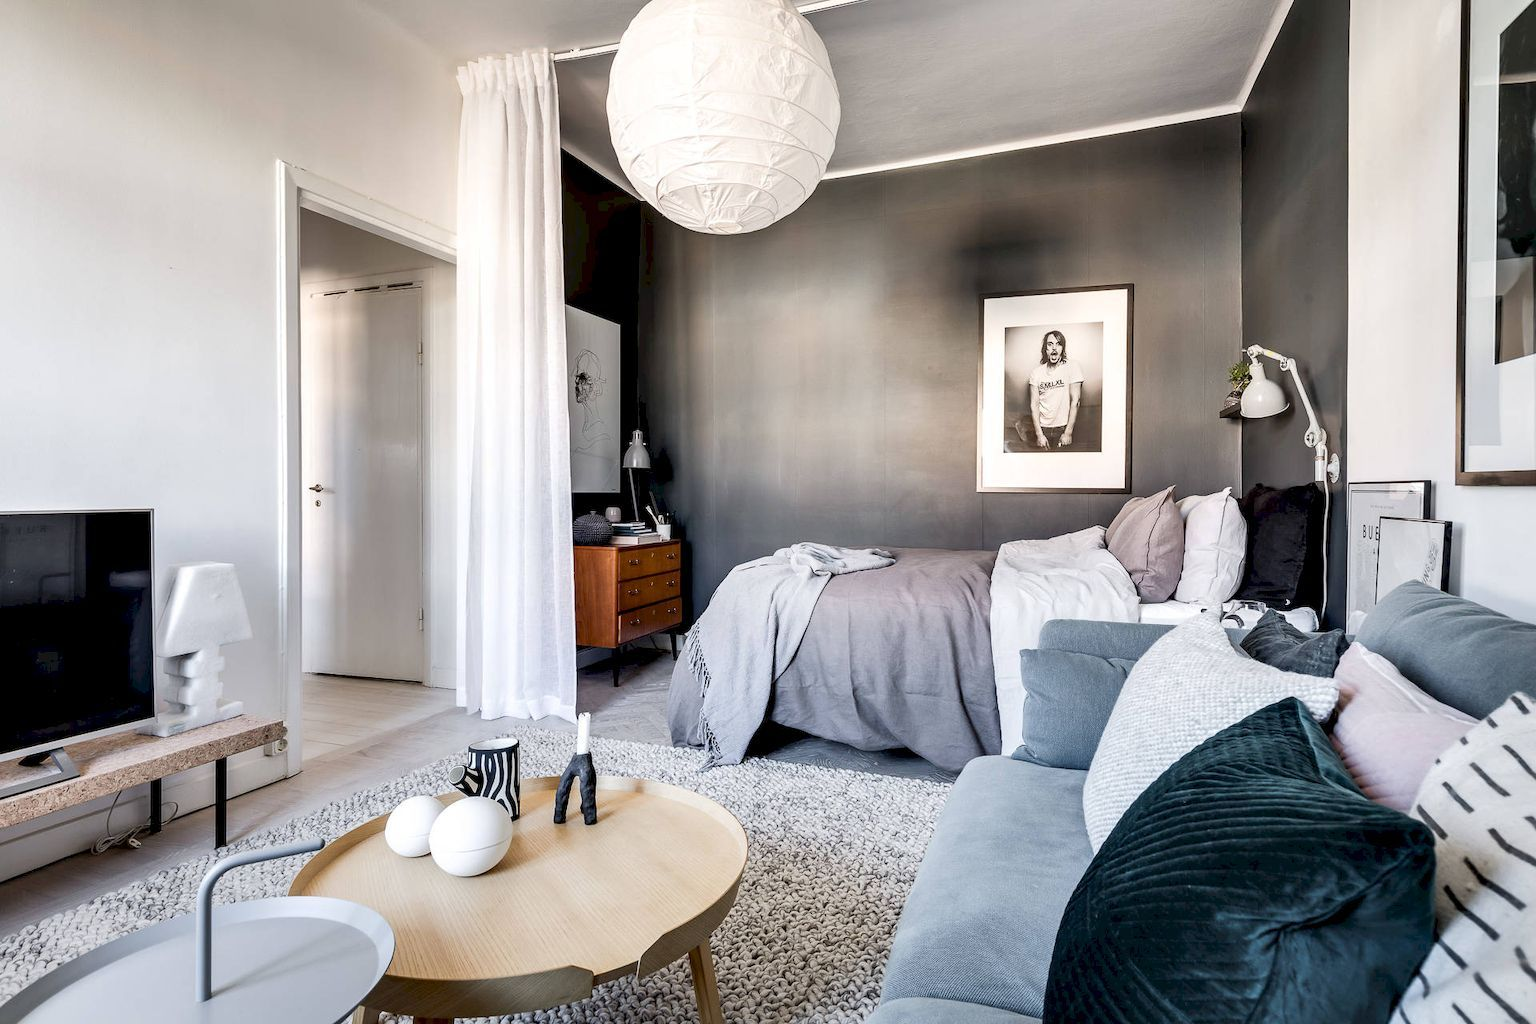 Awesome 140 Stunning Apartment Decorating Ideas And Makeover Https Coachdecor Com 140 Smart A Apartment Bedroom Decor Small Apartment Bedrooms Apartment Room